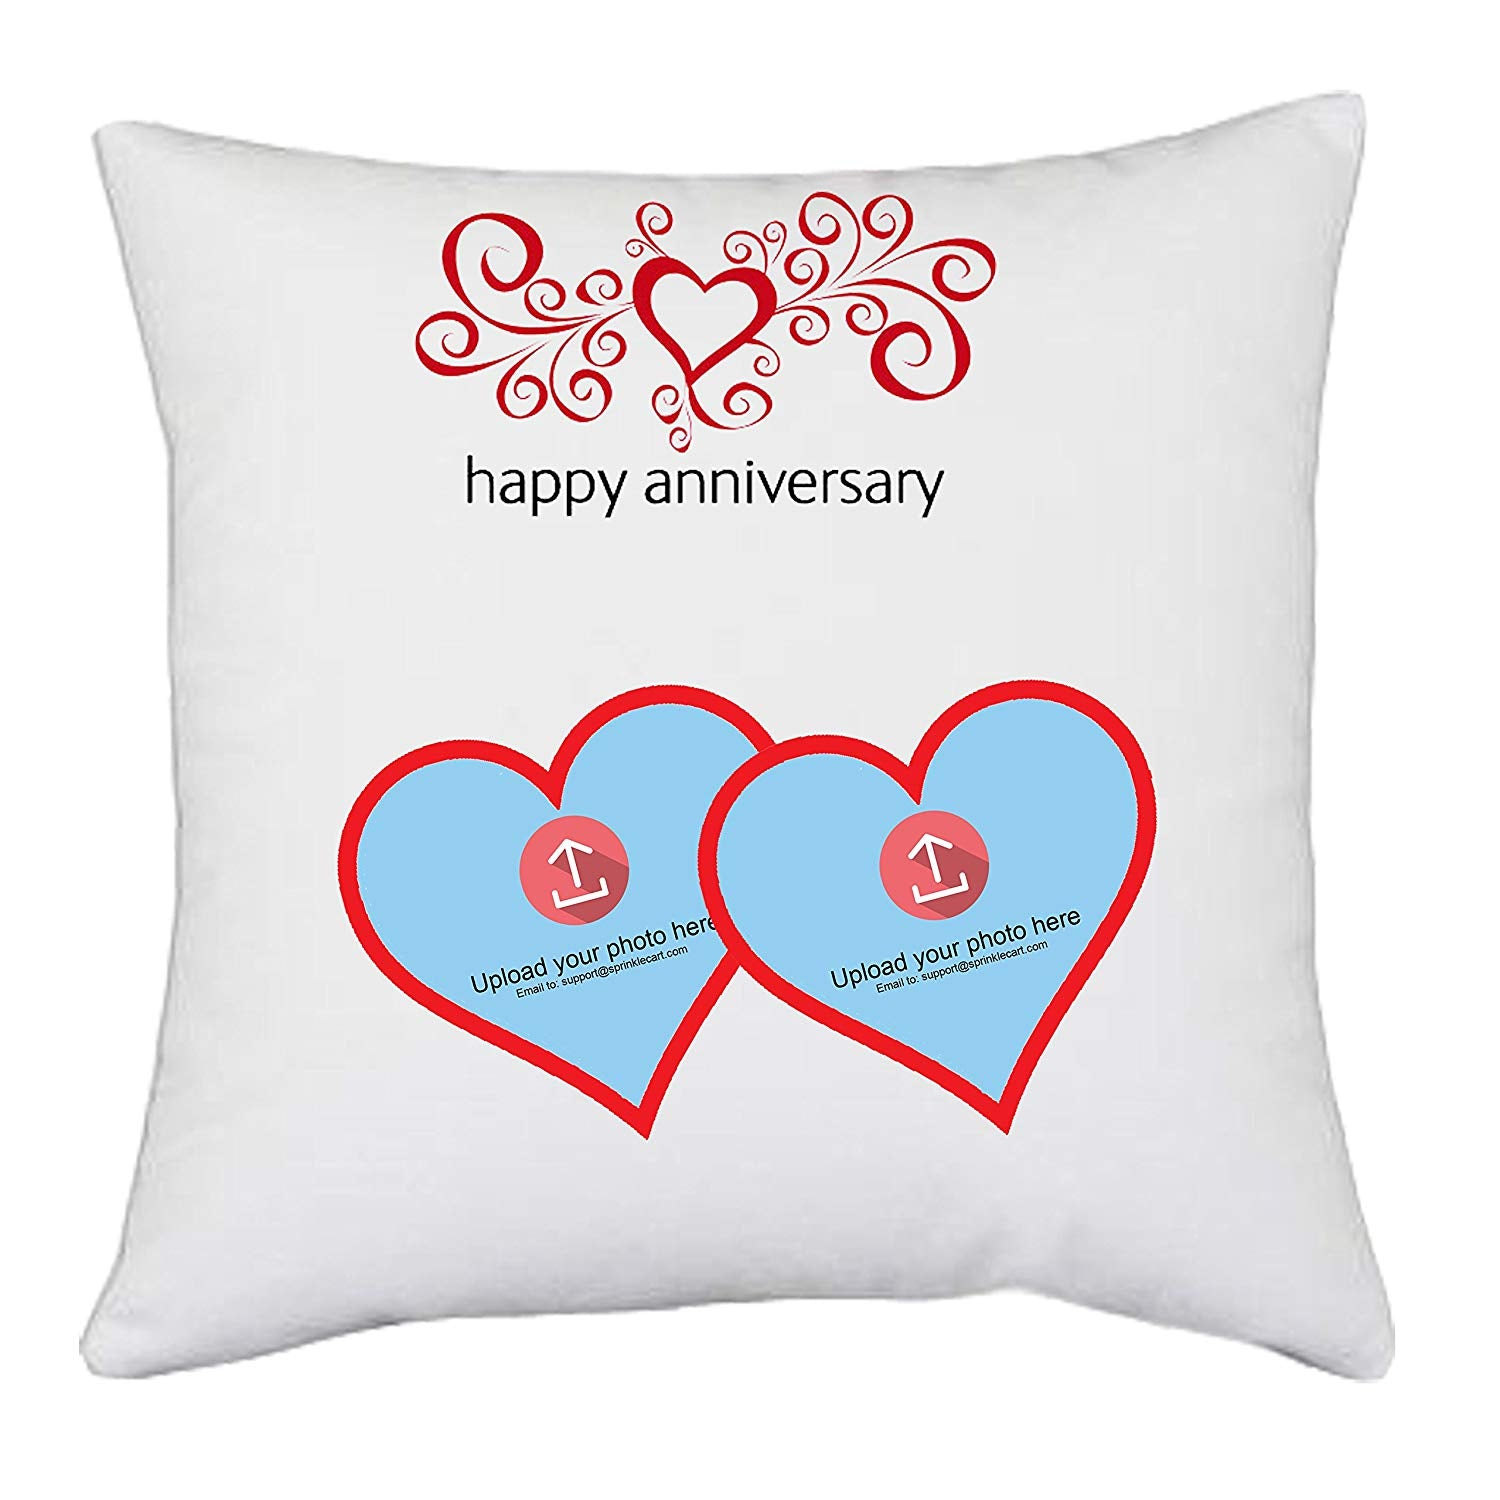 Happy Anniversary | Sprinklecart's Customized Couple Photo Printed Gift Pillows | 15″ x 15″ with Filler Insert